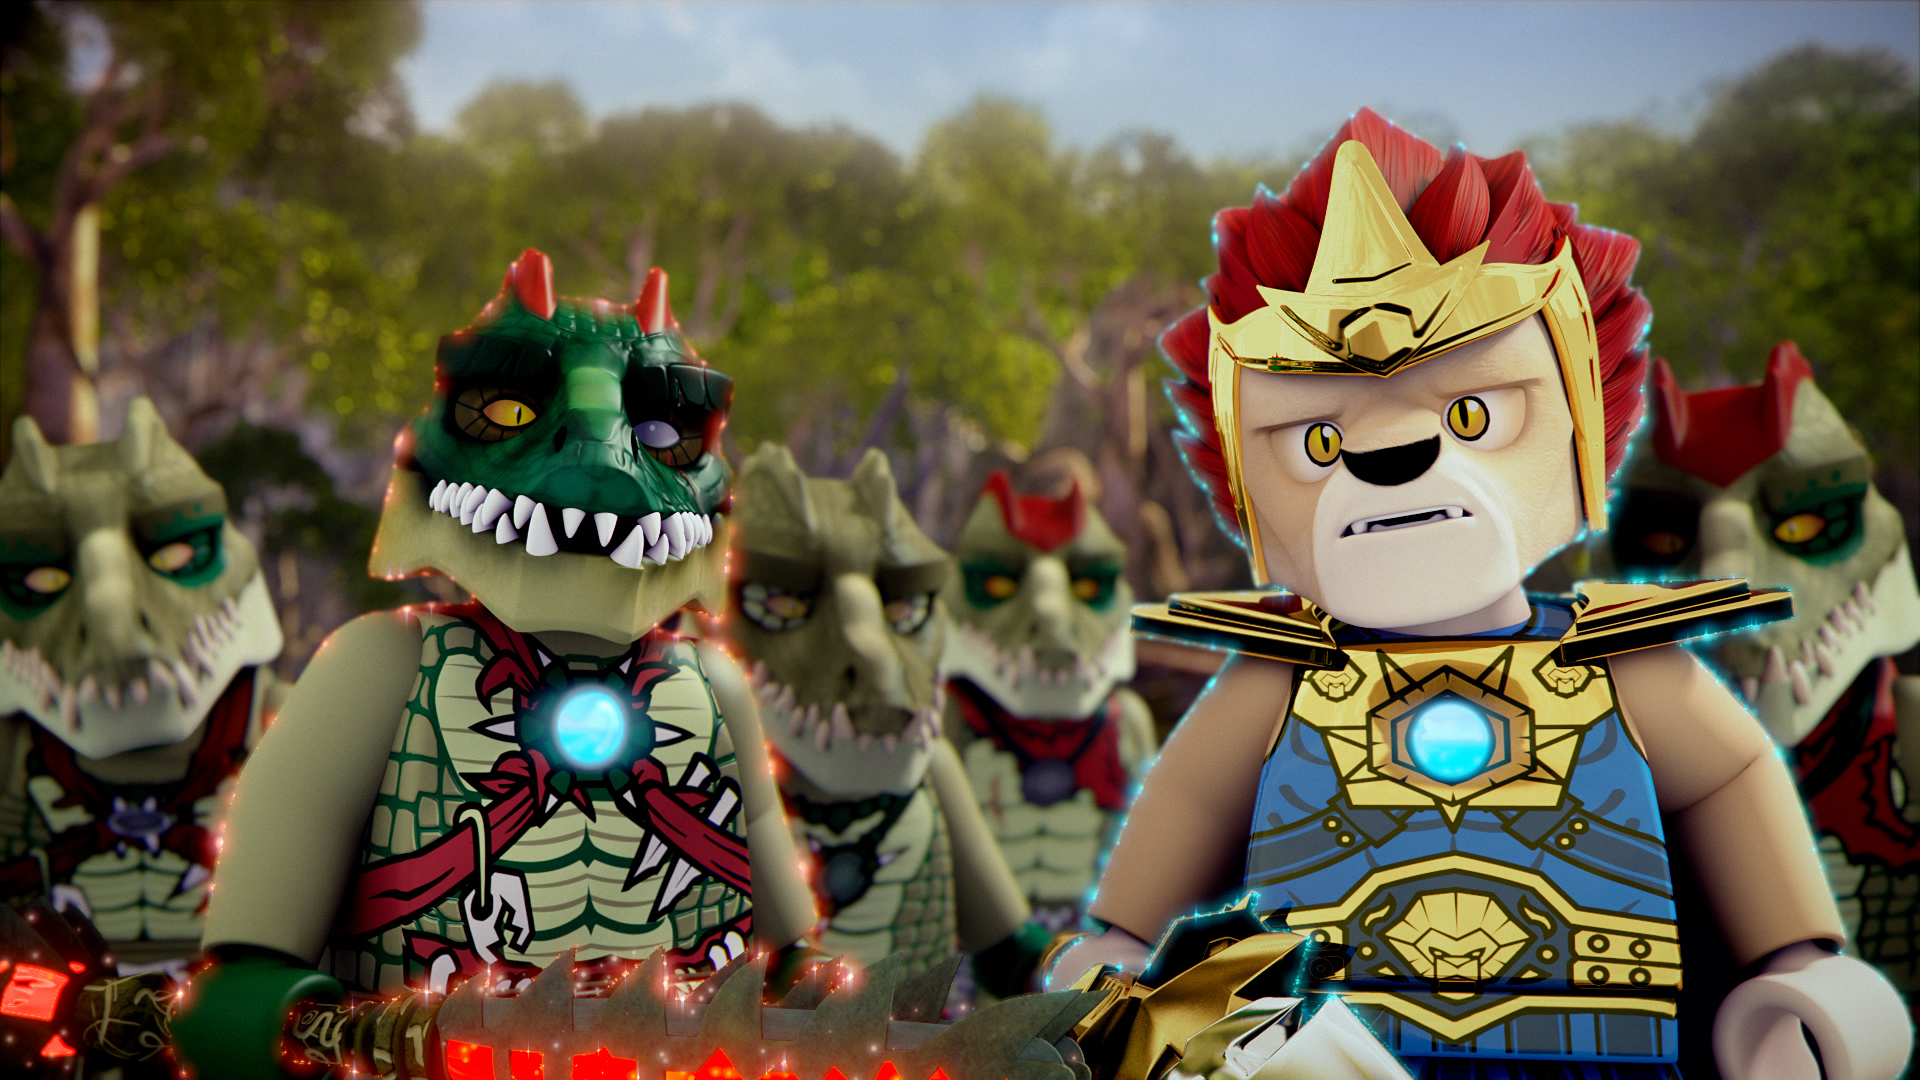 Warner bros home entertainment brings lego legends of chima the lion the crocodile and the - Image de lego chima ...